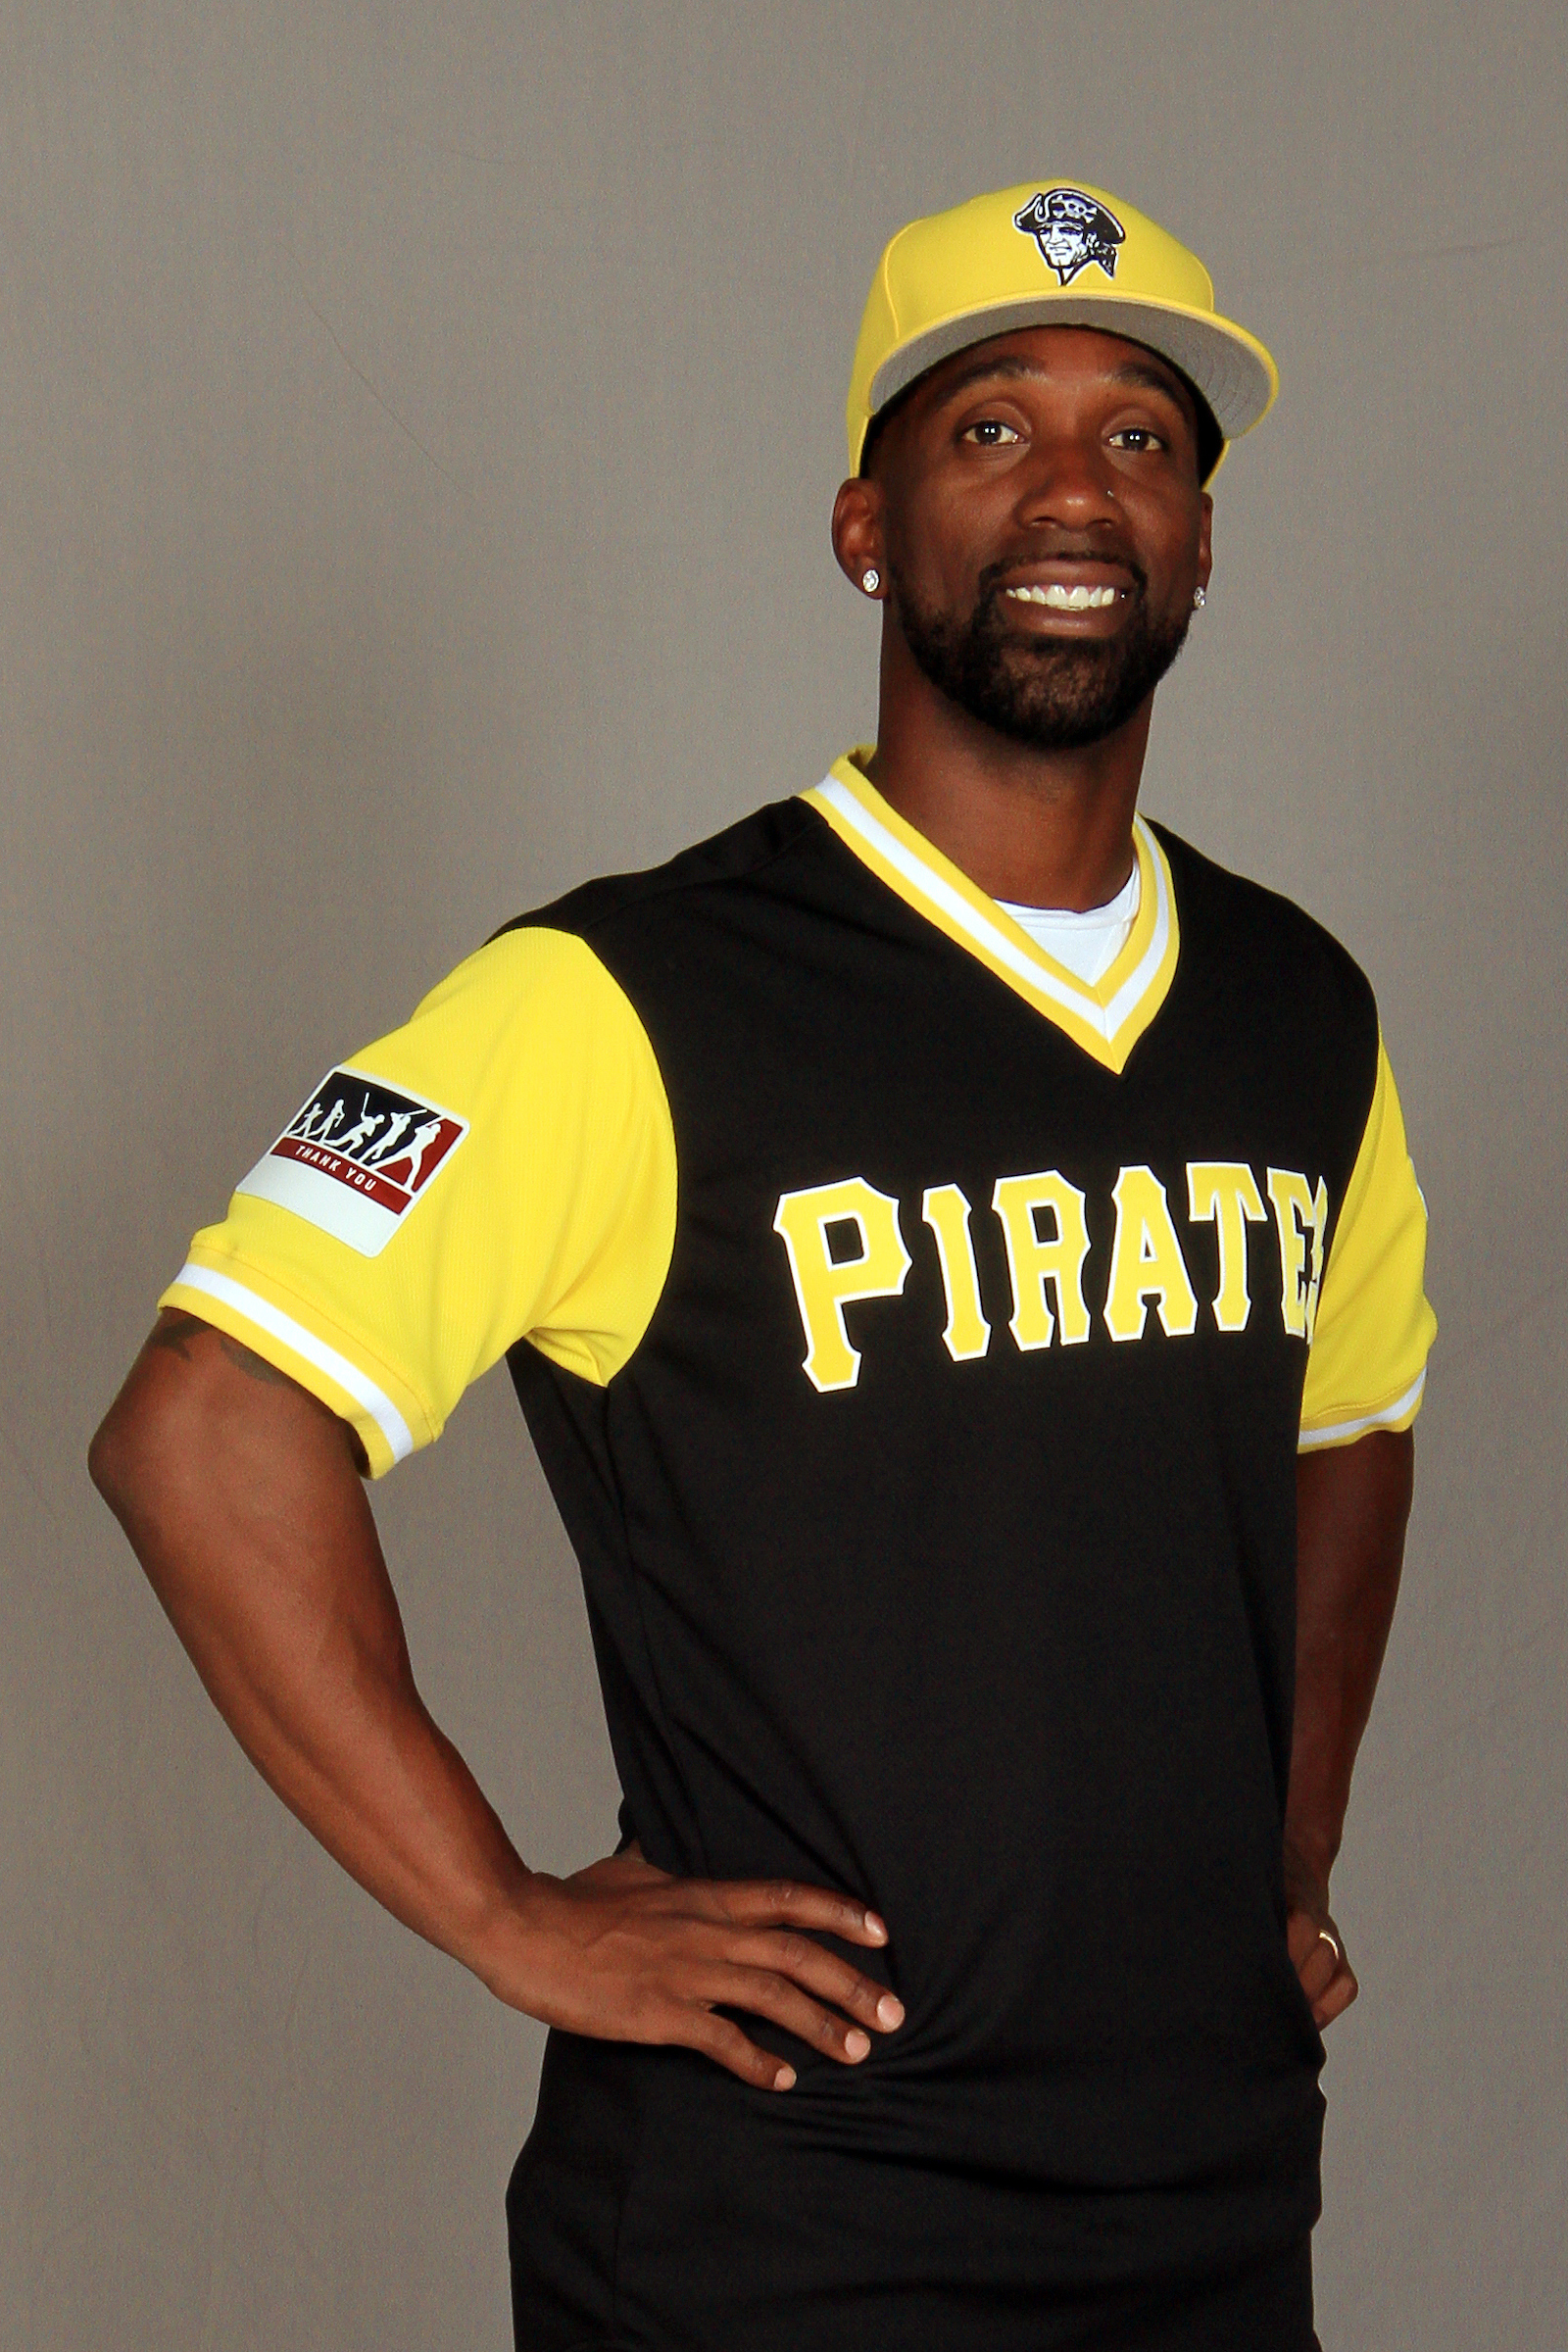 b833a9eab Check out the Pirates  new colorful jerseys with nicknames on the ...